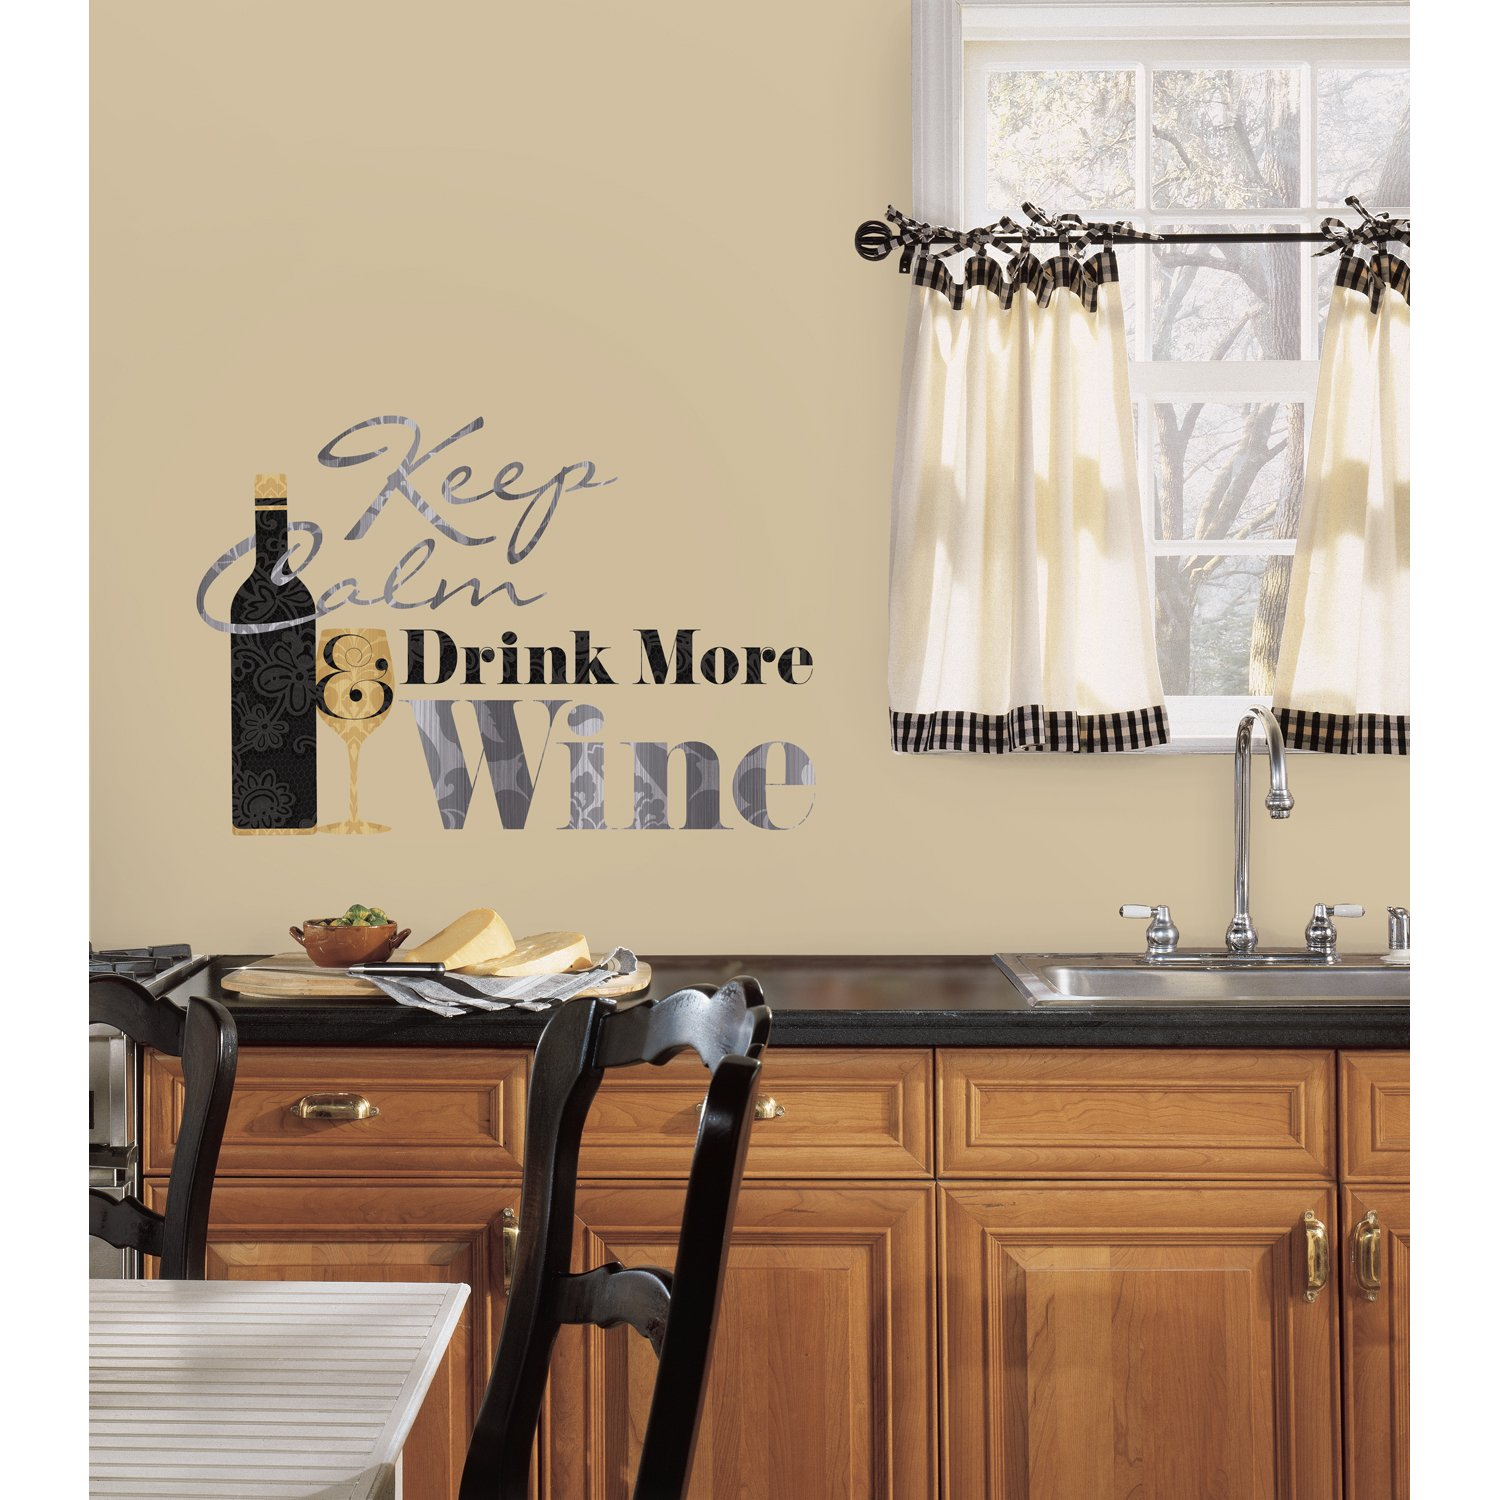 roommates rmk2373scs keep calm and drink wine quote peel and stick roommates rmk2373scs keep calm and drink wine quote peel and stick wall decals 1 pack decorative wall appliques amazon com